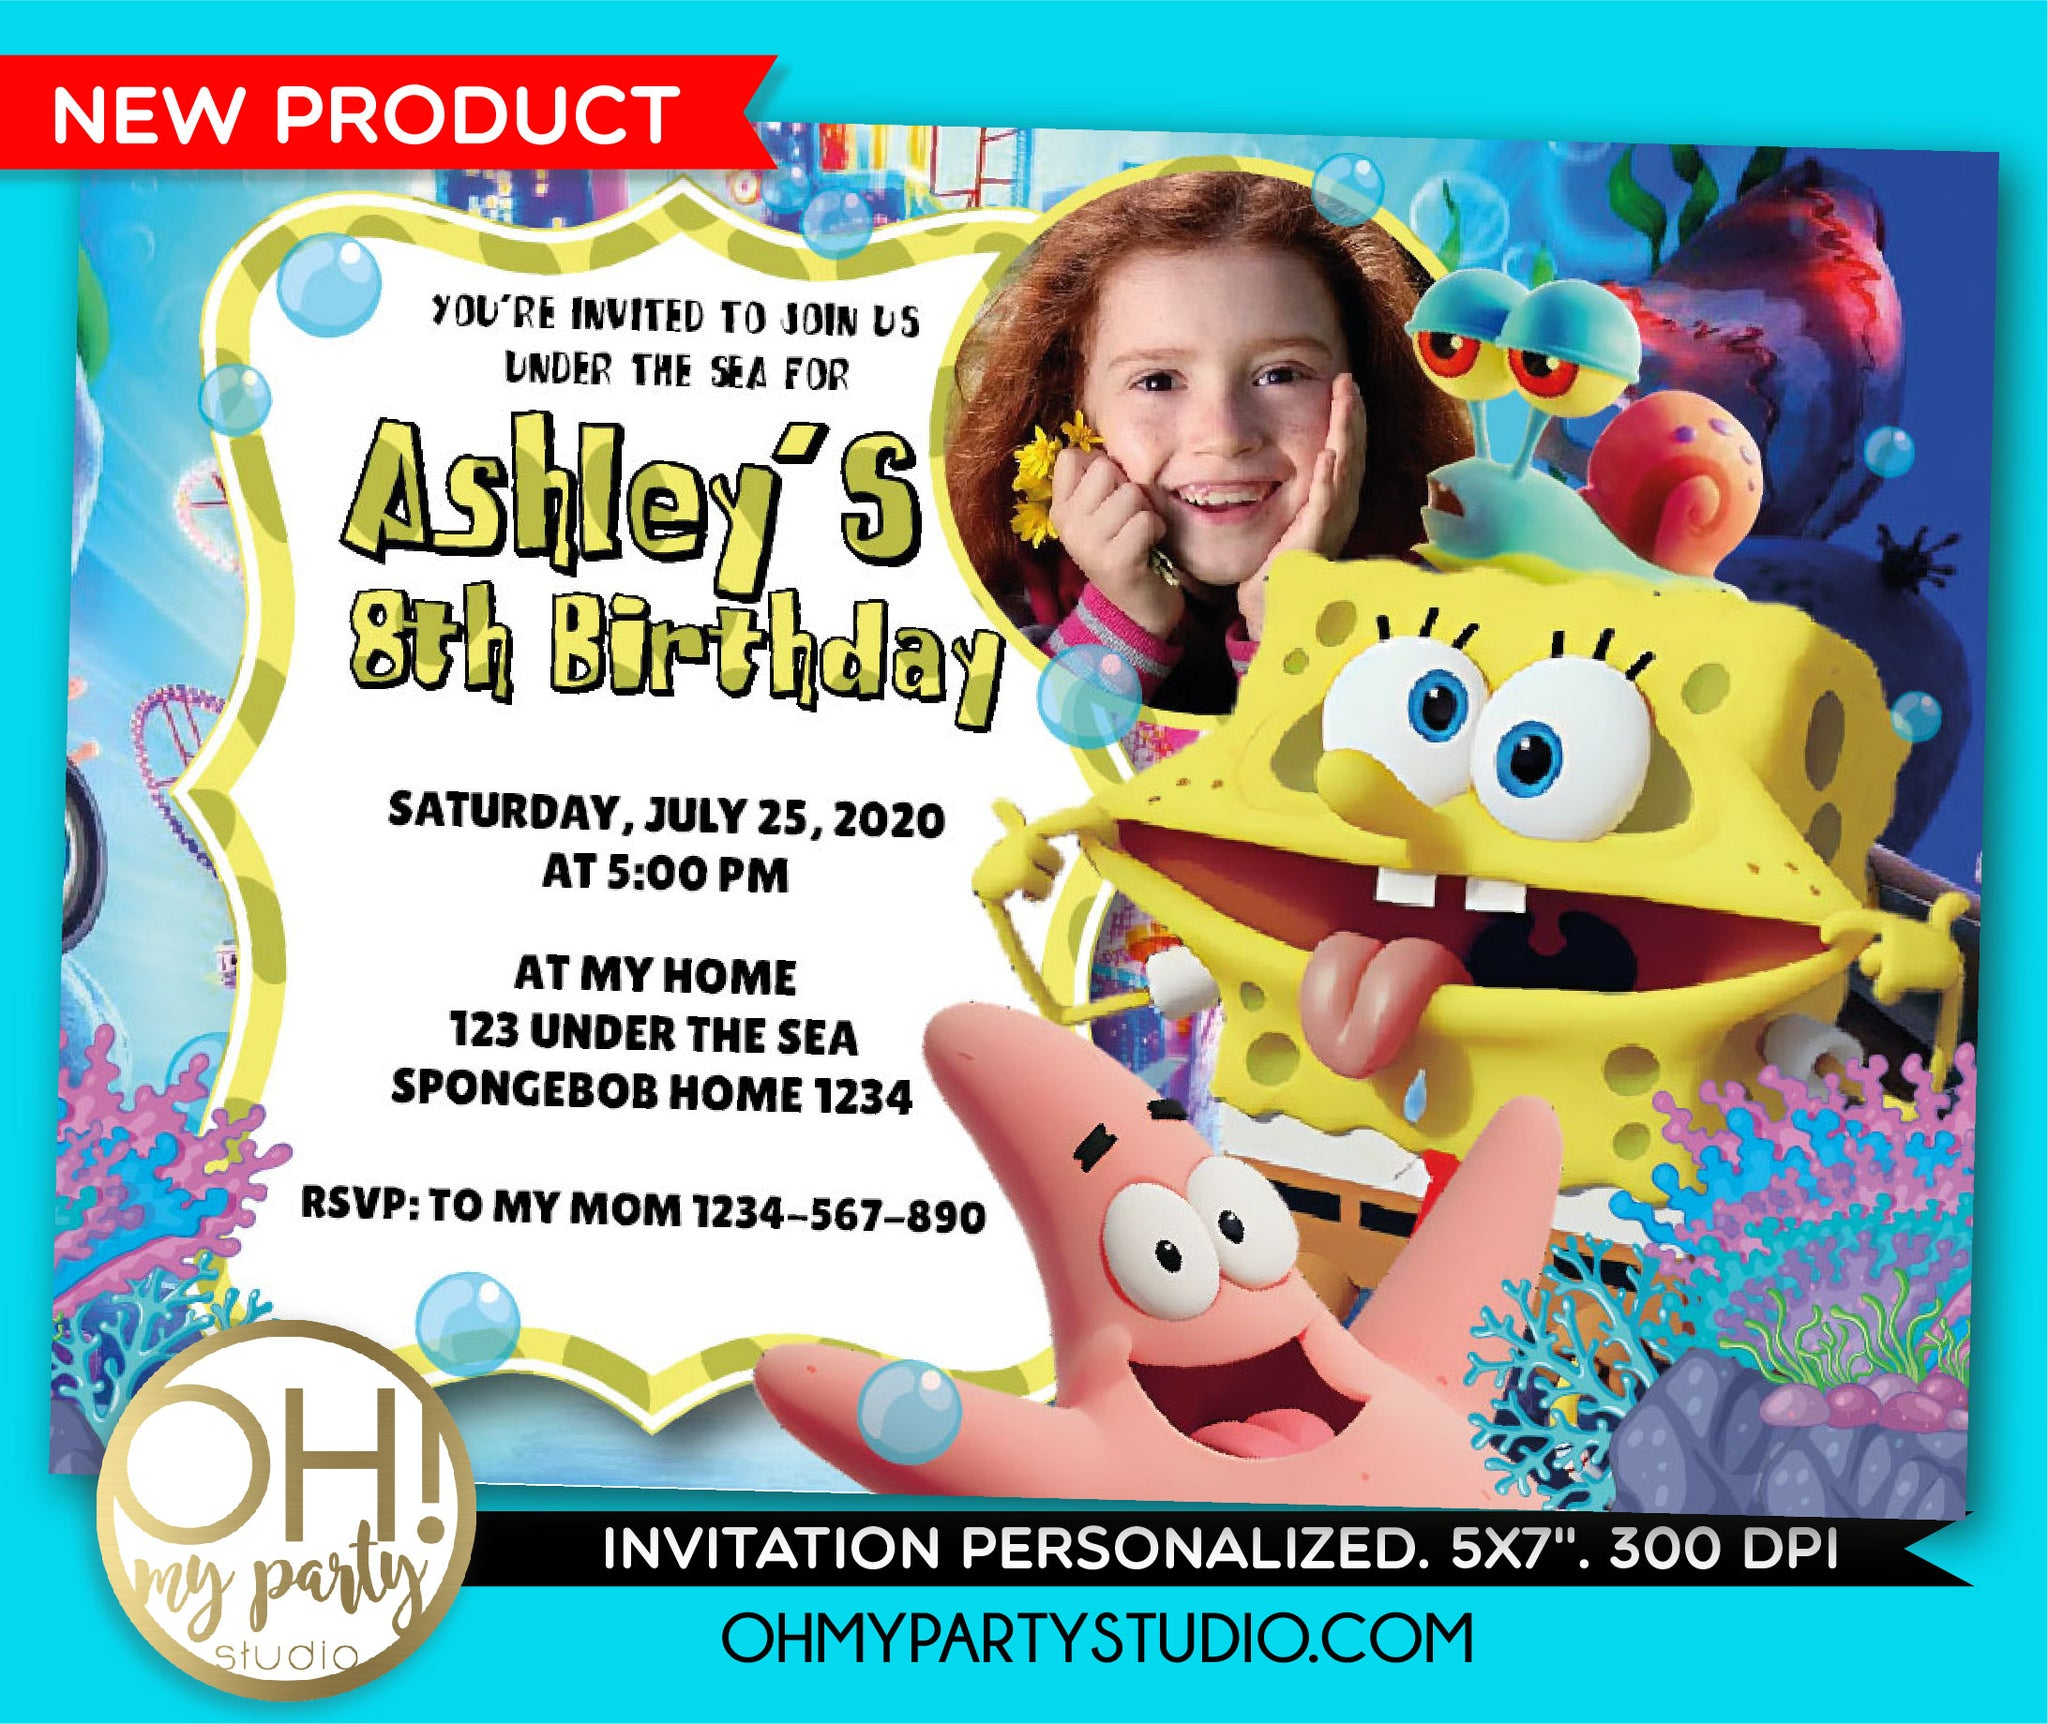 SPONGEBOB BIRTHDAY PARTY INVITATION, SPONGEBOB 2020 BIRTHDAY PARTY INVITATION, SPONGEBOB MOVIE 2020 INVITATION, SPONGEBOB BIRTHDAY PARTY, SPONGEBOB PARTY IDEAS, SPONGEBOB 2020 MOVIE PARTY, SPONGEBOB MOVIE INVITATION, SPONGEBOB MOVIE 2020 BIRTHDAY PARTY, SPONGEBOB 2020 PARTY IDEAS, SPONGEBOB MOVIE 2020 INVITATIONS, SPONGEBOB INVITATIONS, SPONGEBOB INVITATION, SPONGE ON THE RUN